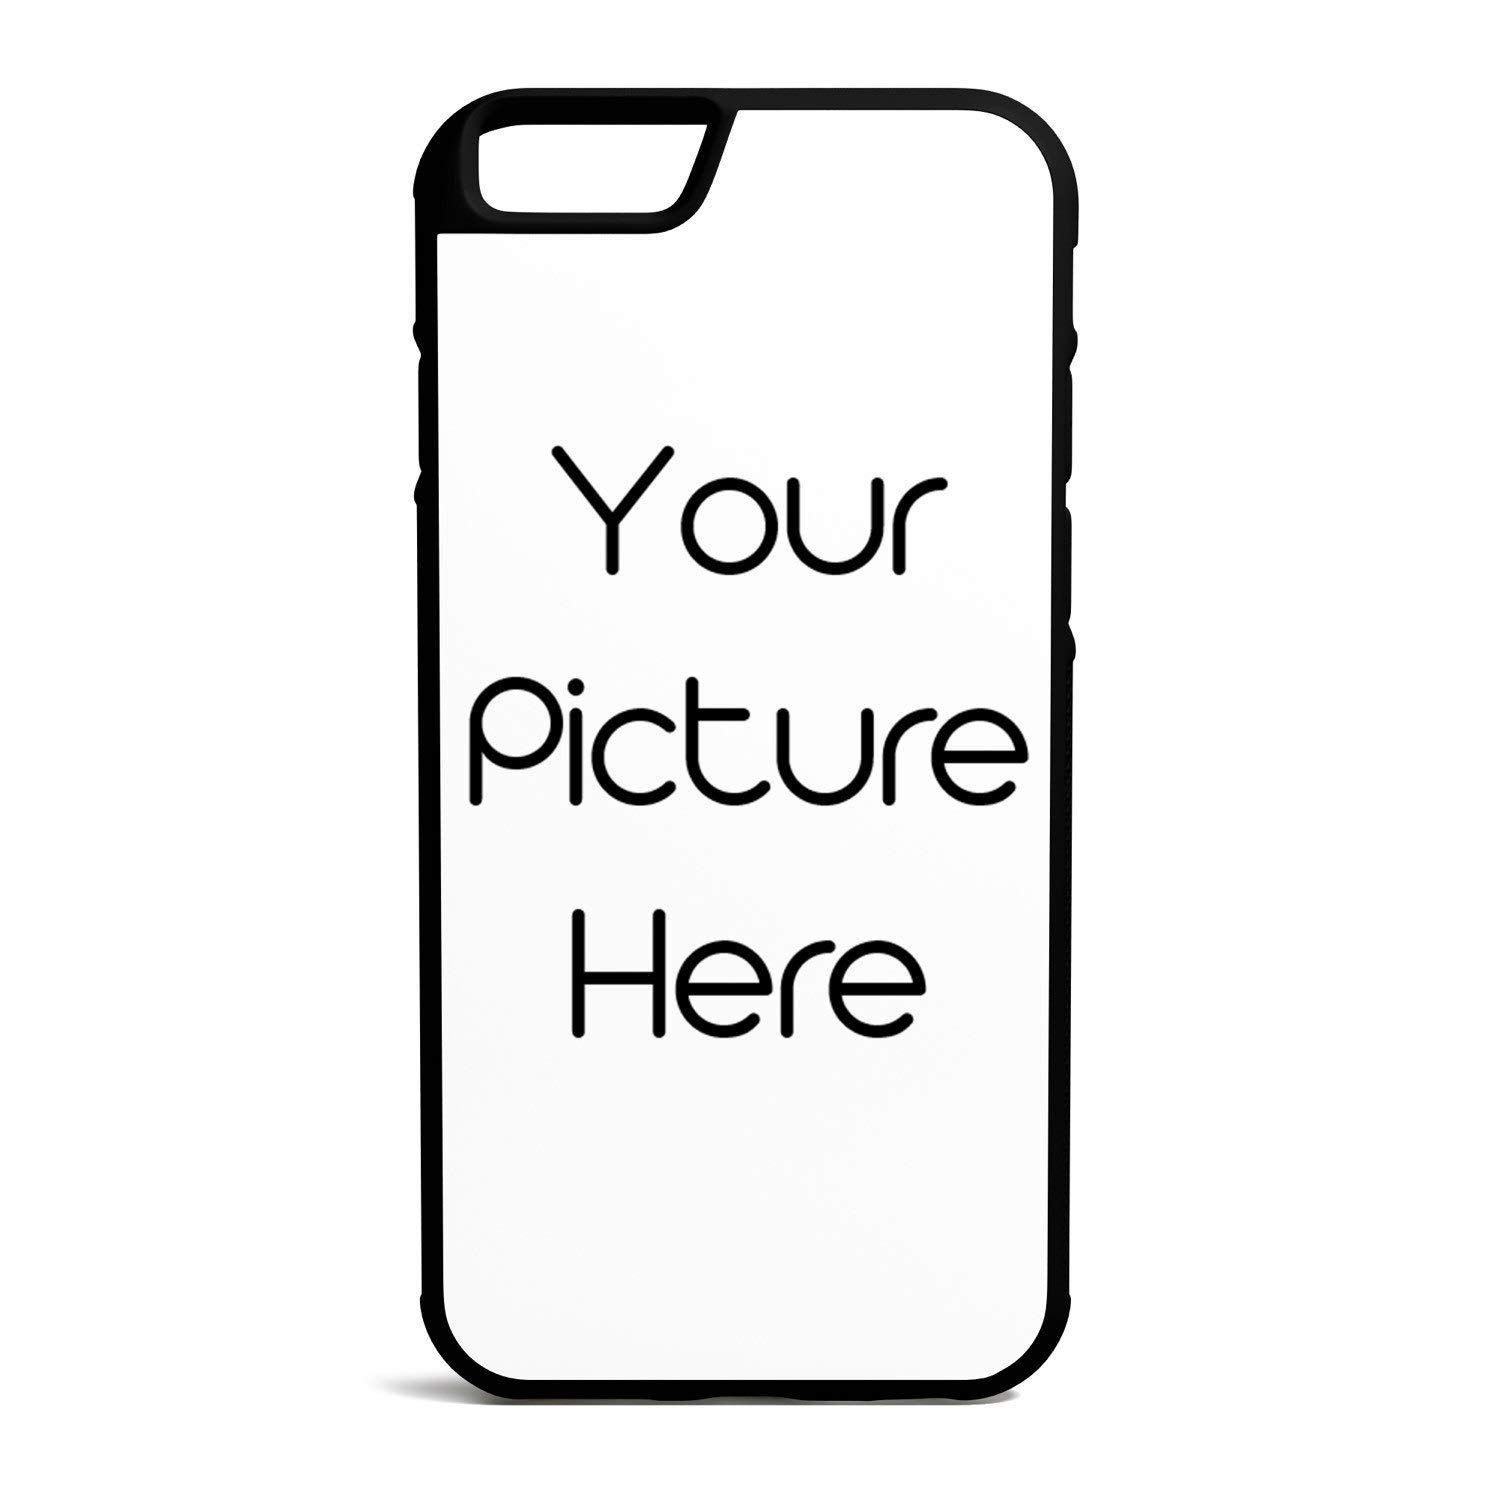 lowest price 38cf2 9117f D Sticky Company Custom iPhone Cases Personalized Customize Your Picture  CASE Make Your Own Phone Case Hard Plastic (iPhone 8 Plus)